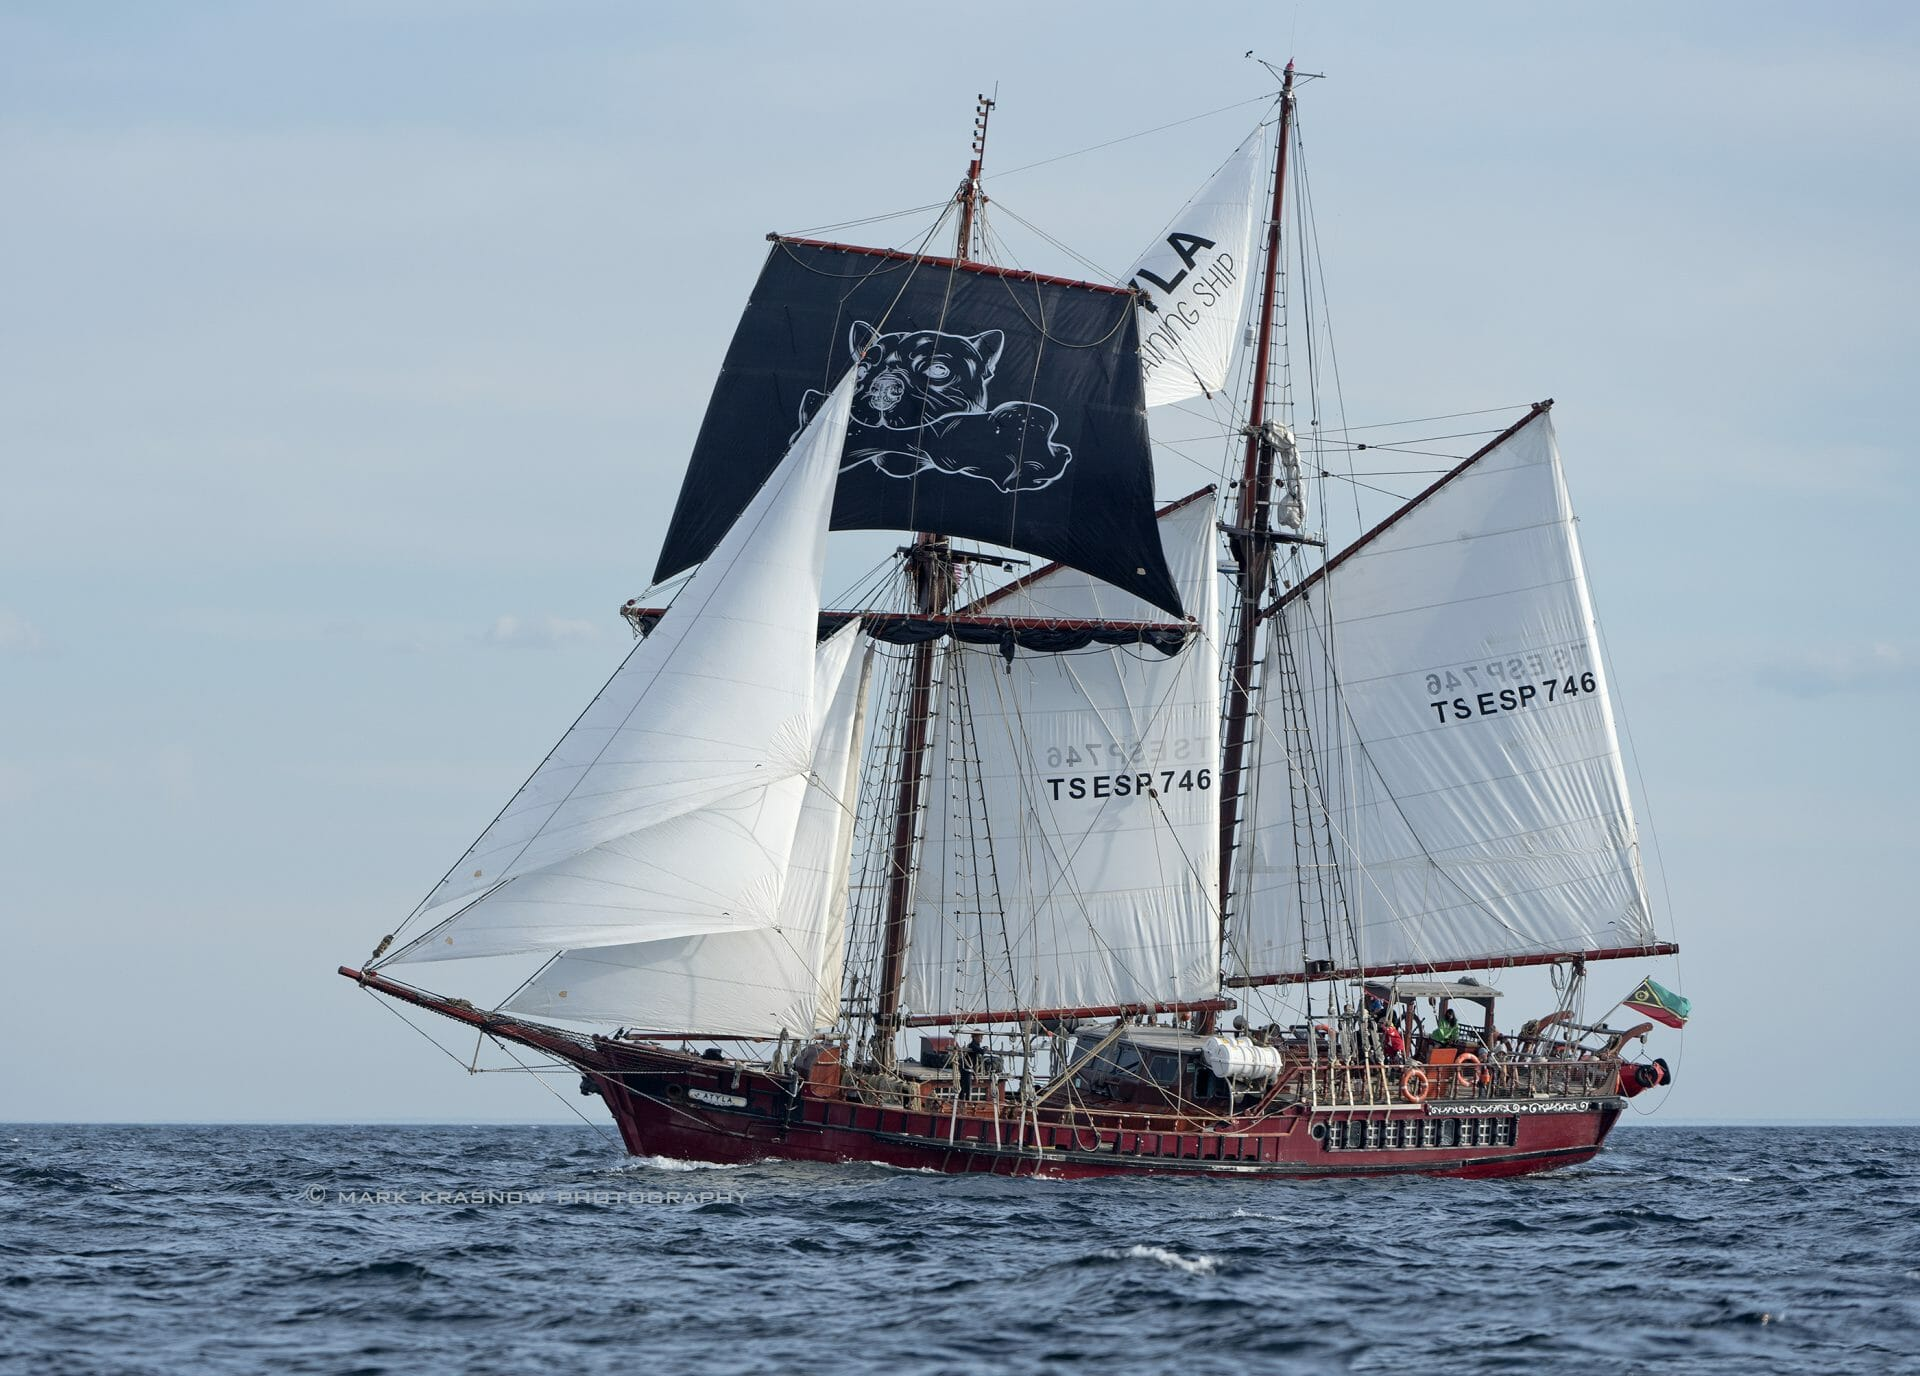 Tall ship Atyla sailing tall ships races places spots availale sail join adventure astonishing picuture